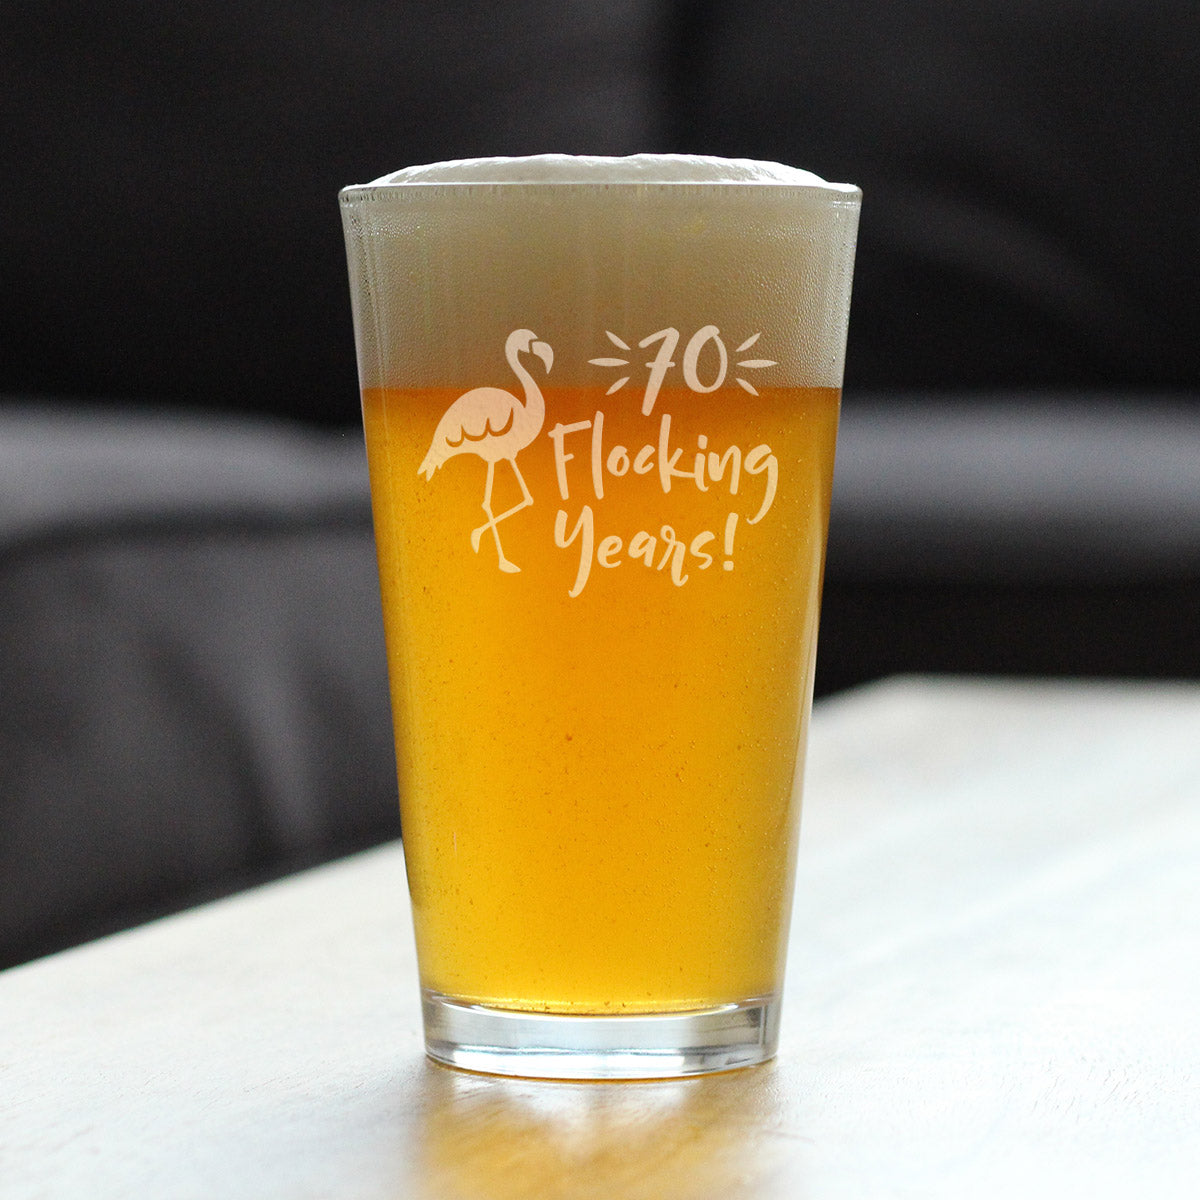 70 Flocking Years - 16 Ounce Pint Glass